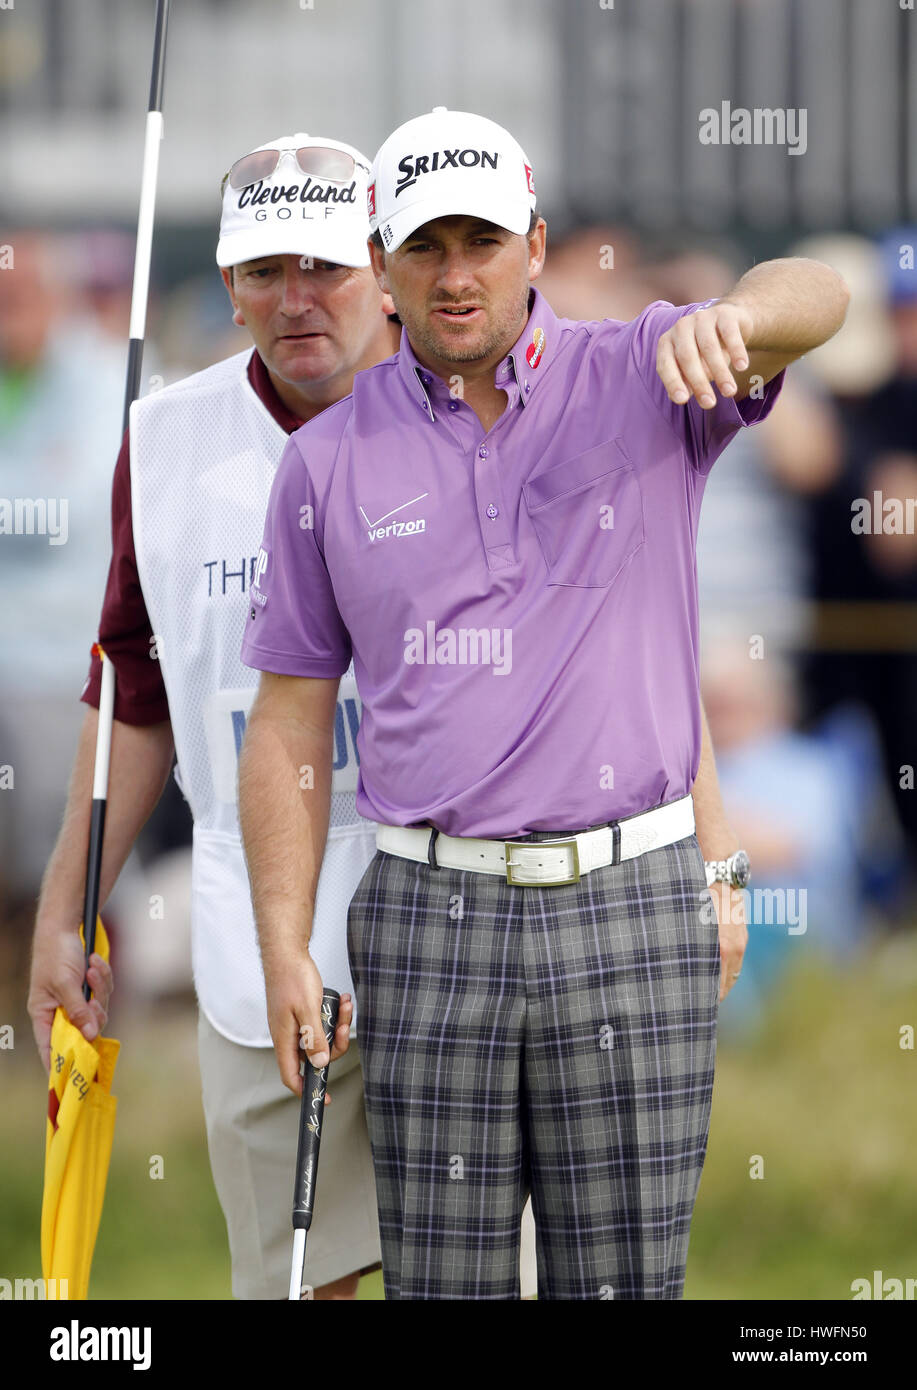 GRAEME MCDOWELL NORTHERN IRELAND NORTHERN IRELAND LYTHAM & ST.ANNES LANCASHIRE ENGLAND 21 July 2012 - Stock Image